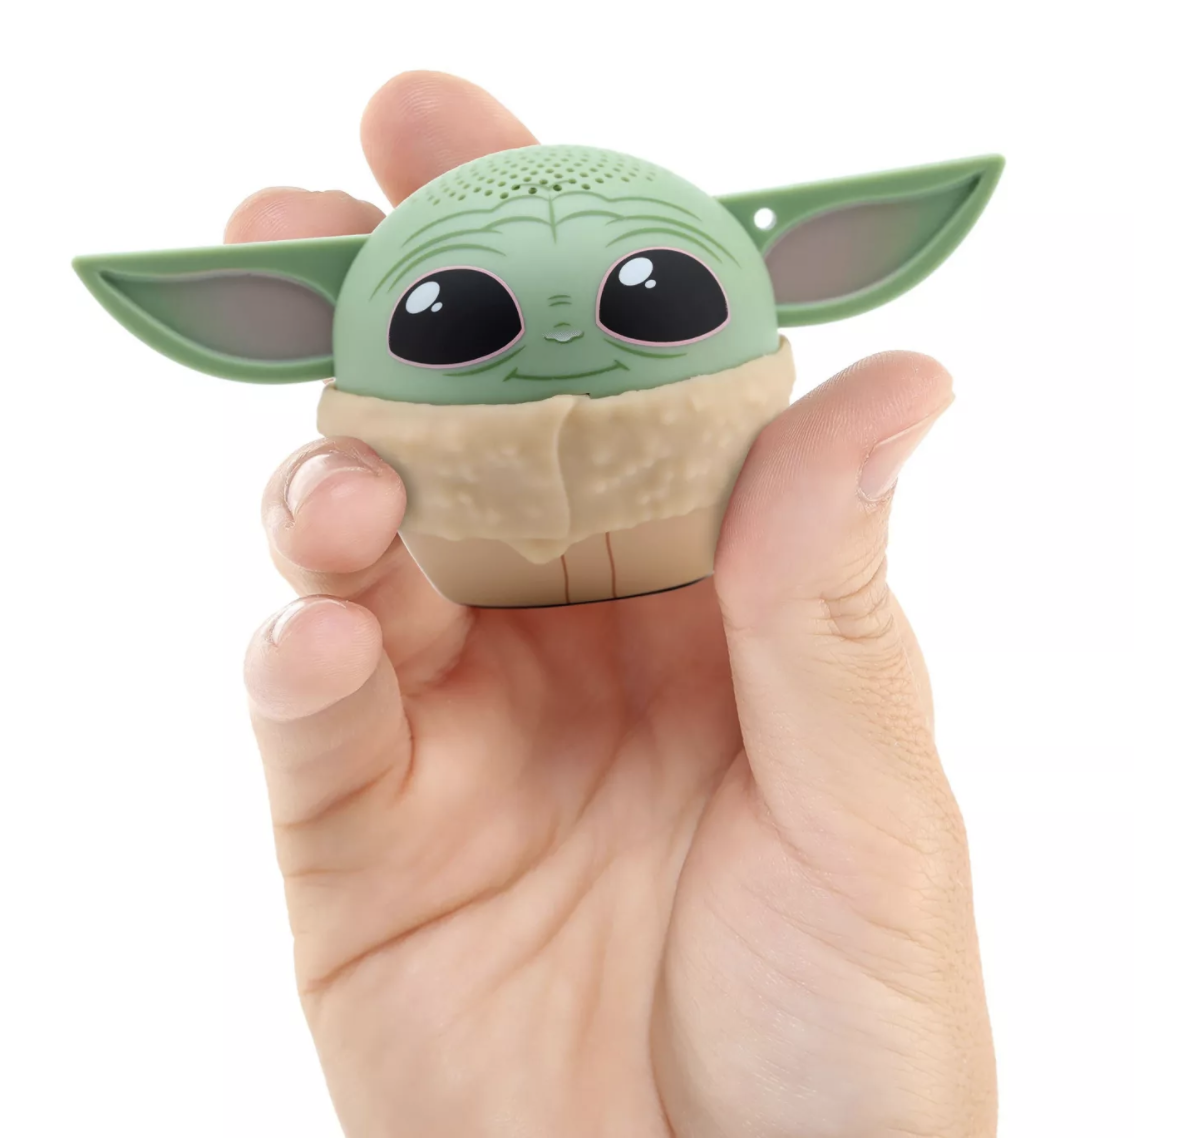 A hand holding the baby Yoda speaker which is slightly smaller than a tennis ball